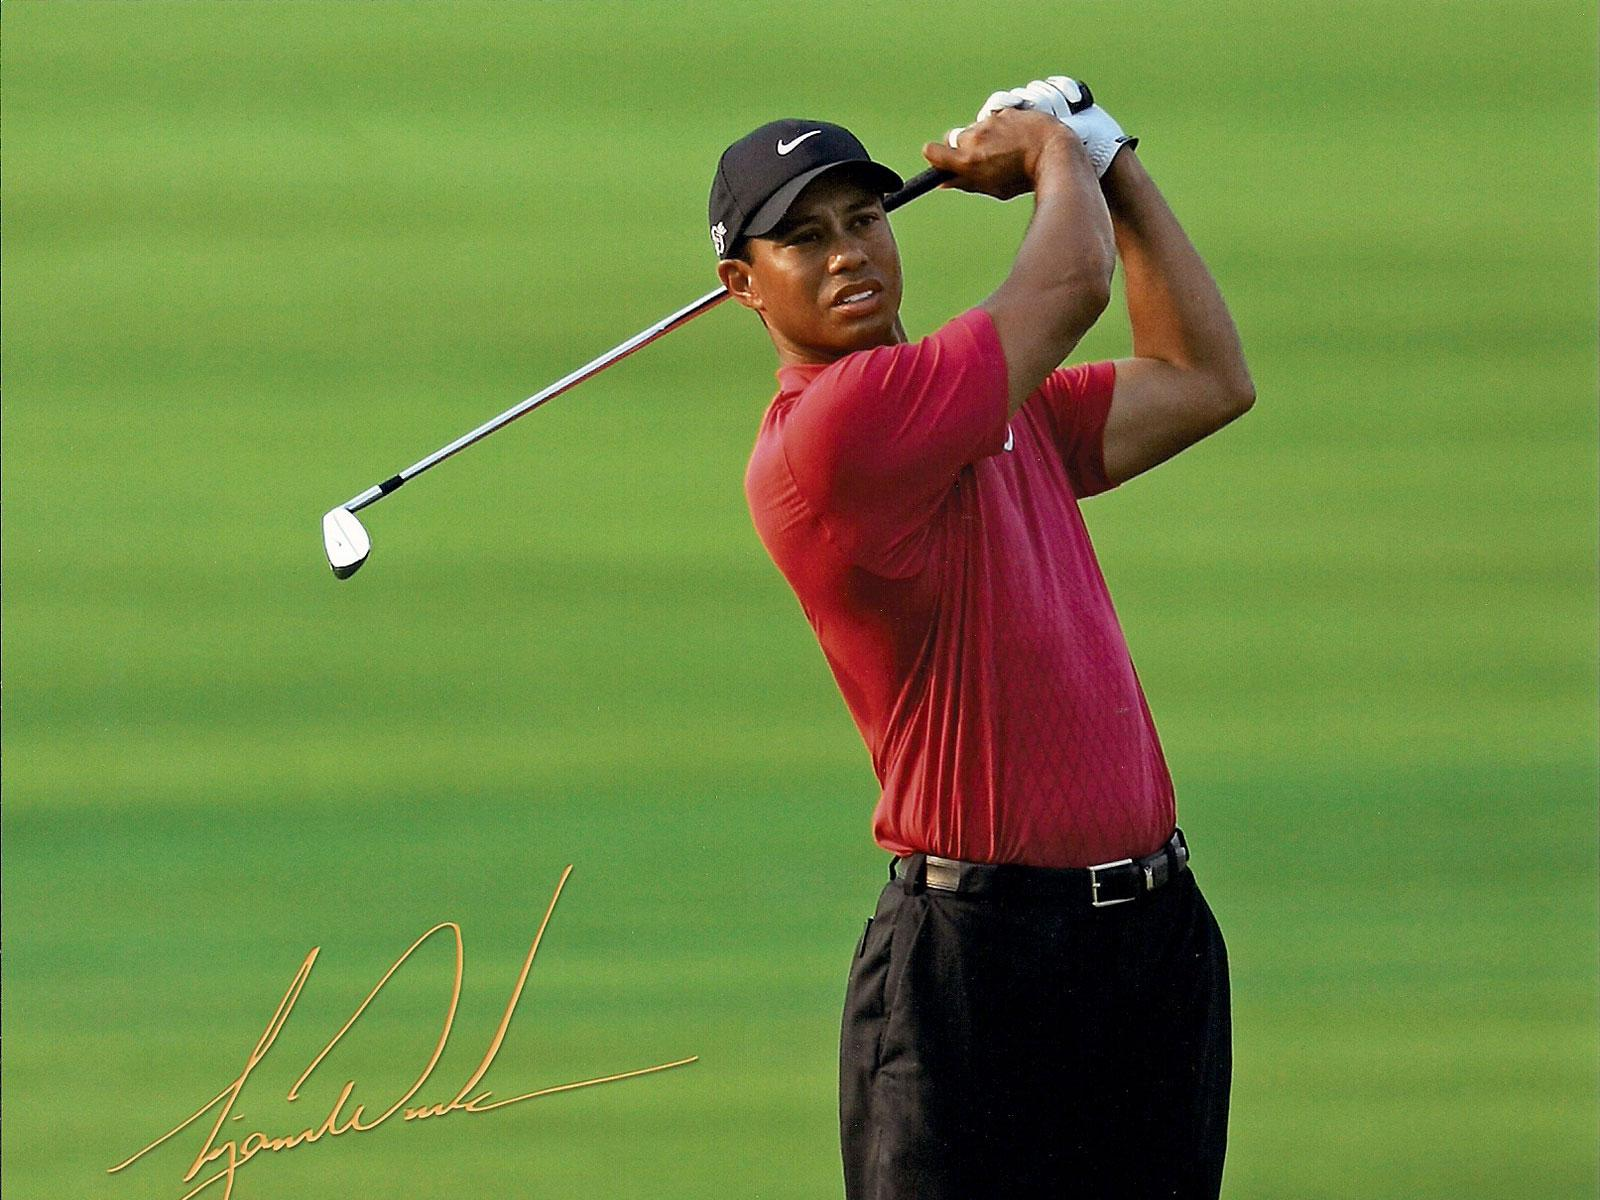 Tiger Woods Wallpaper 1600x1200 42076